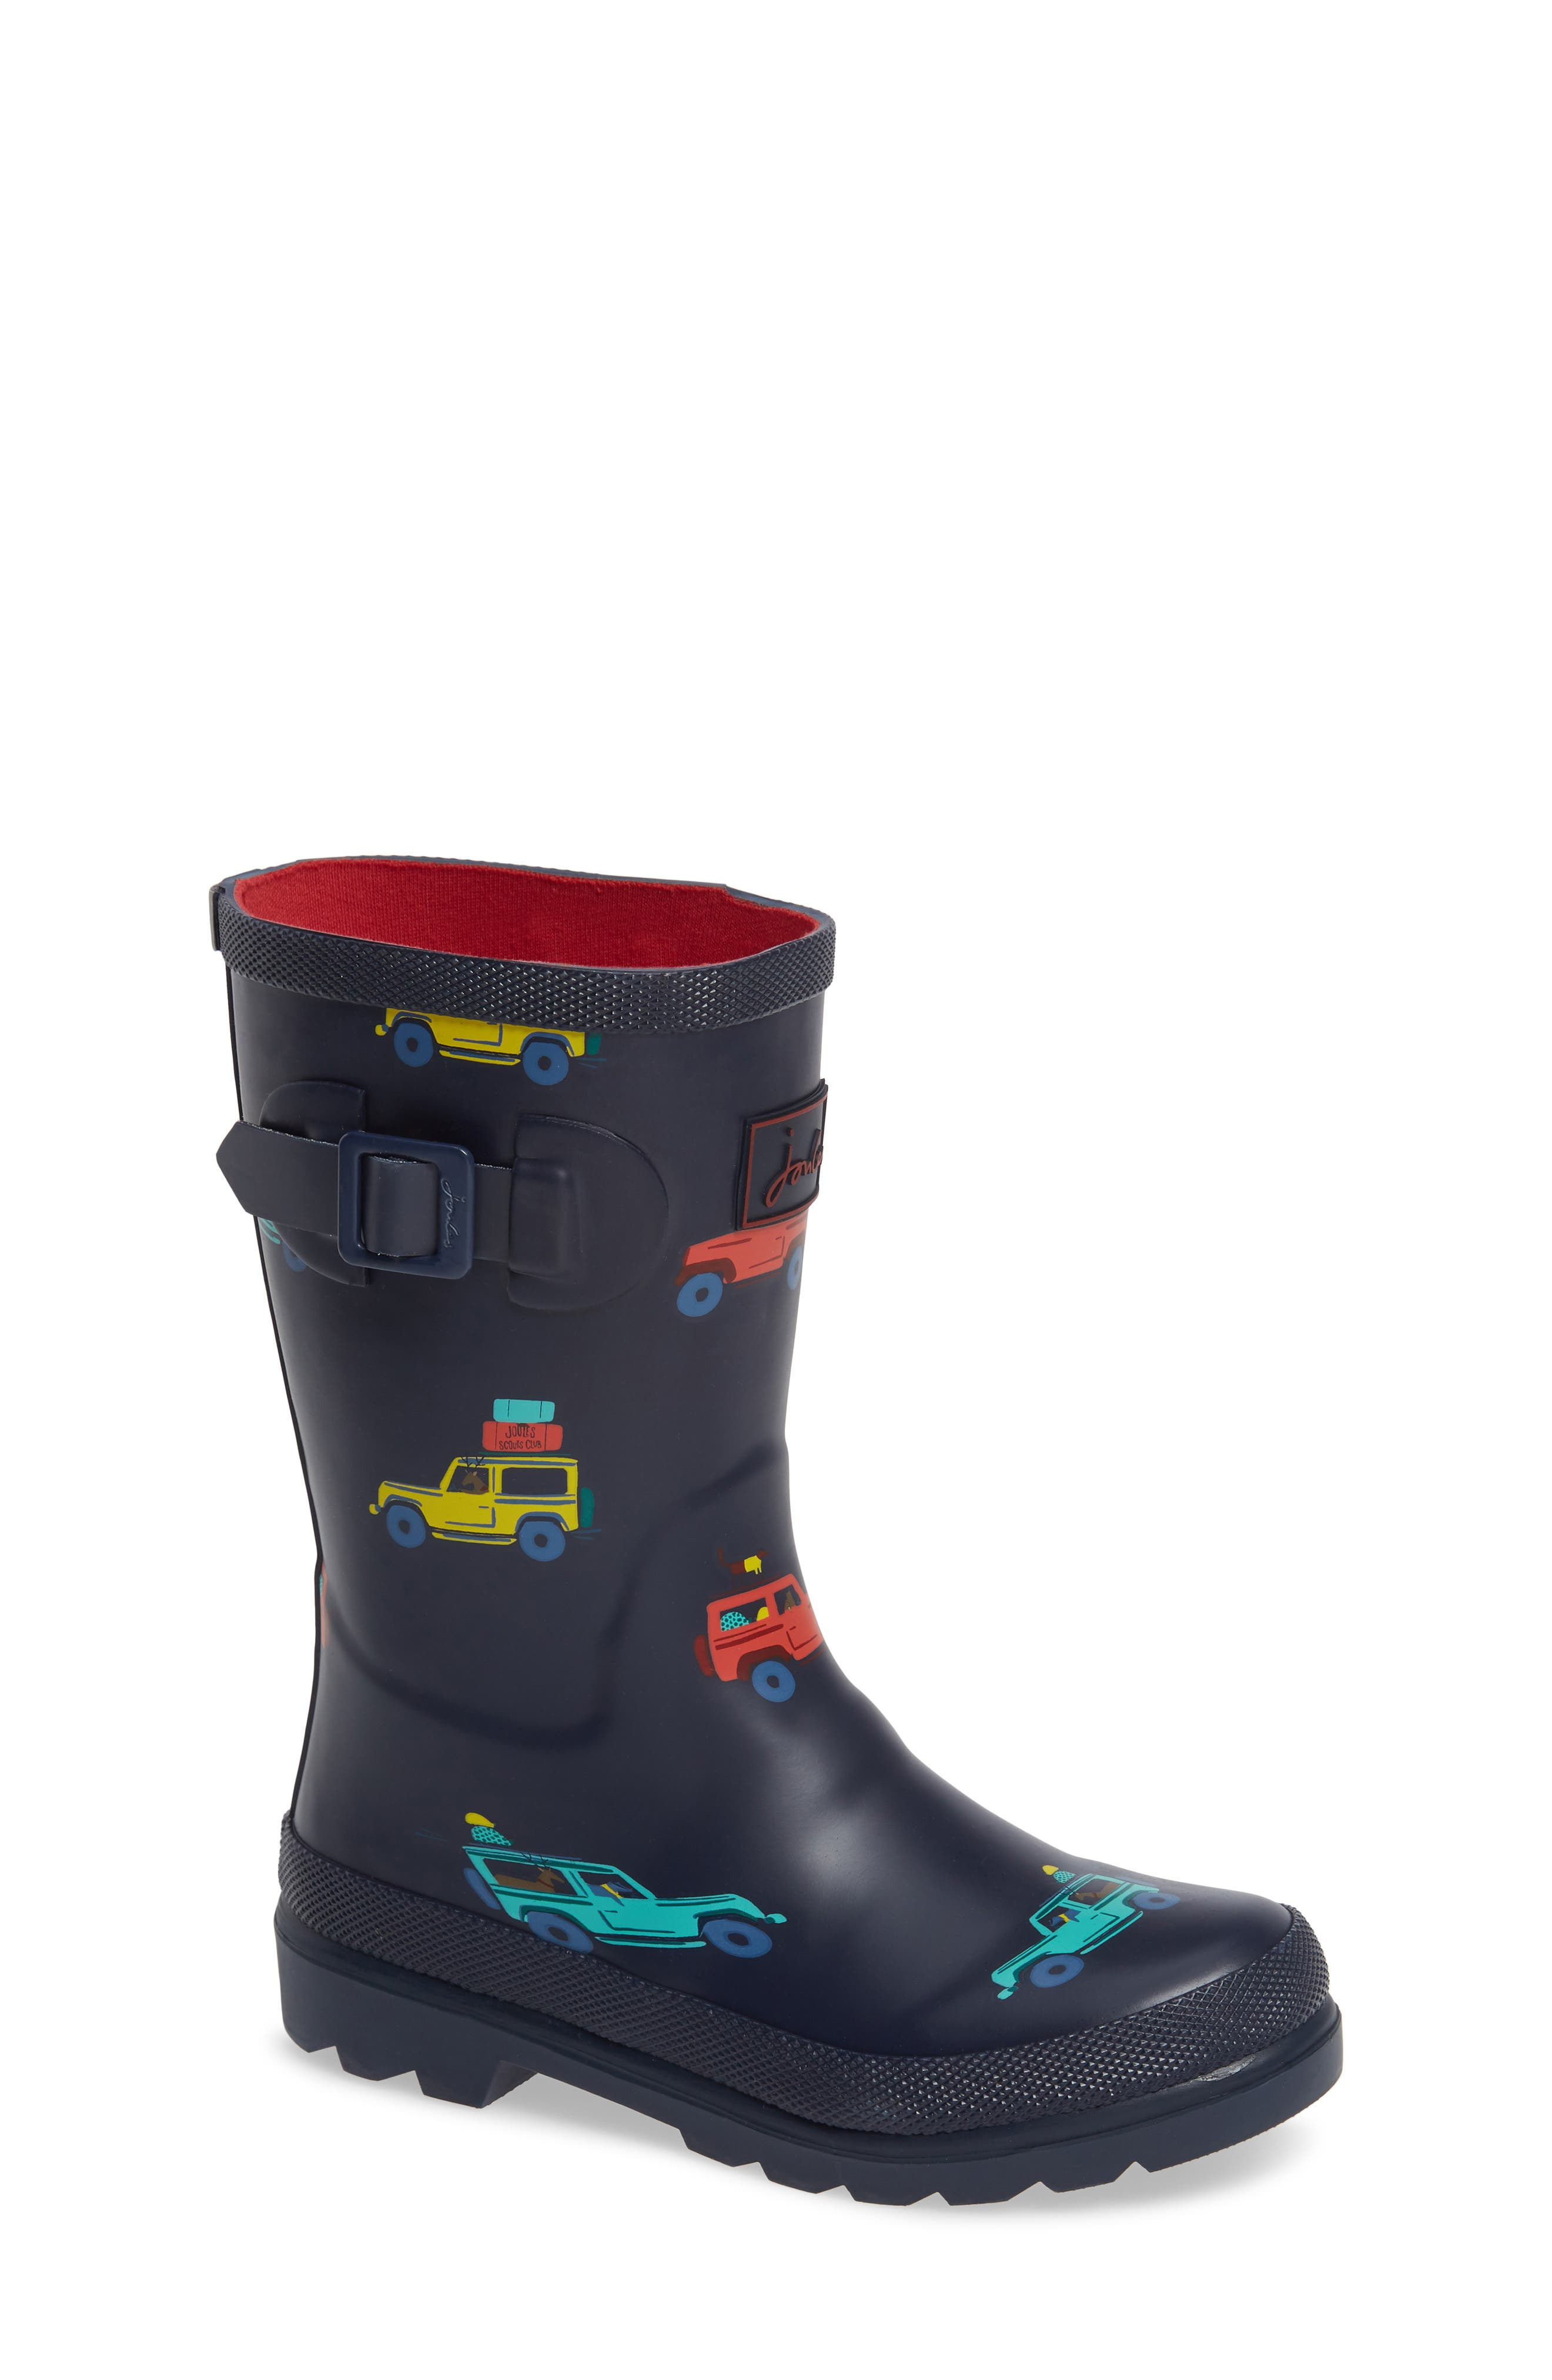 JOULES, Welly Print Waterproof Rain Boot, Main thumbnail 1, color, NAVY SCOUT AND ABOUT